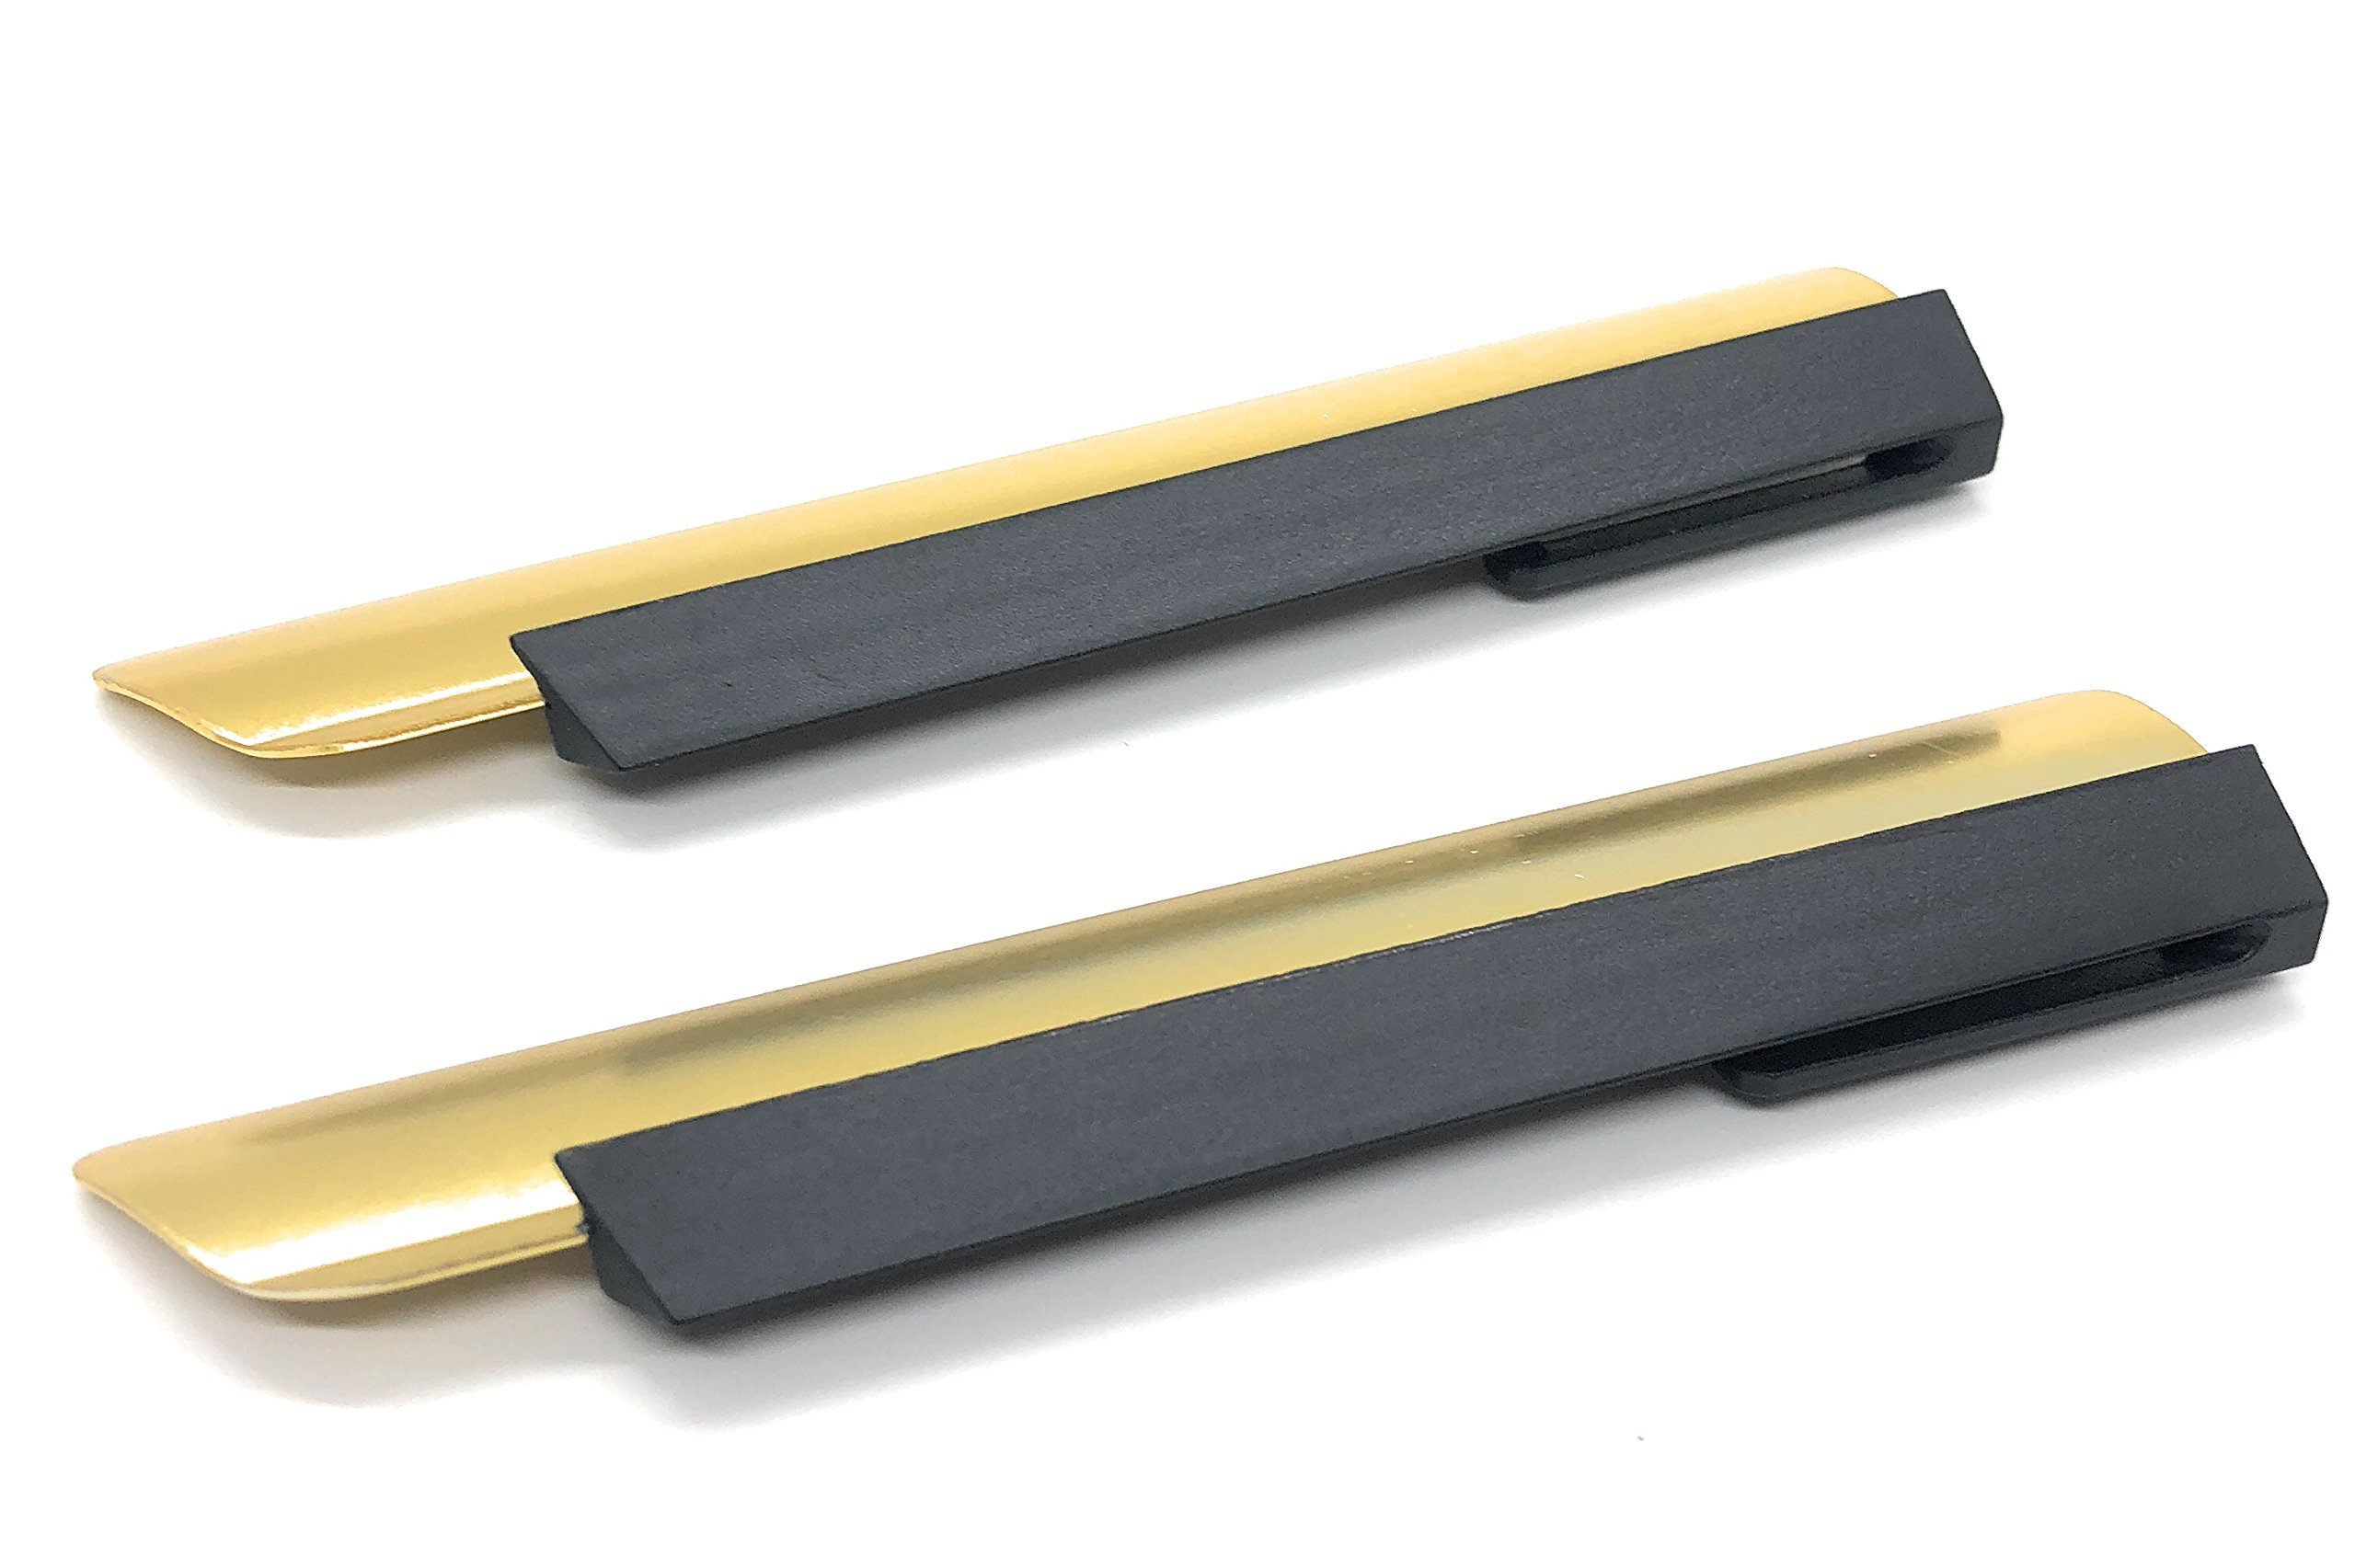 Waiter's Table Crumber/Scraper with Gold Aluminum Blade and Black Handle - 5.5 Inch - Set of 2